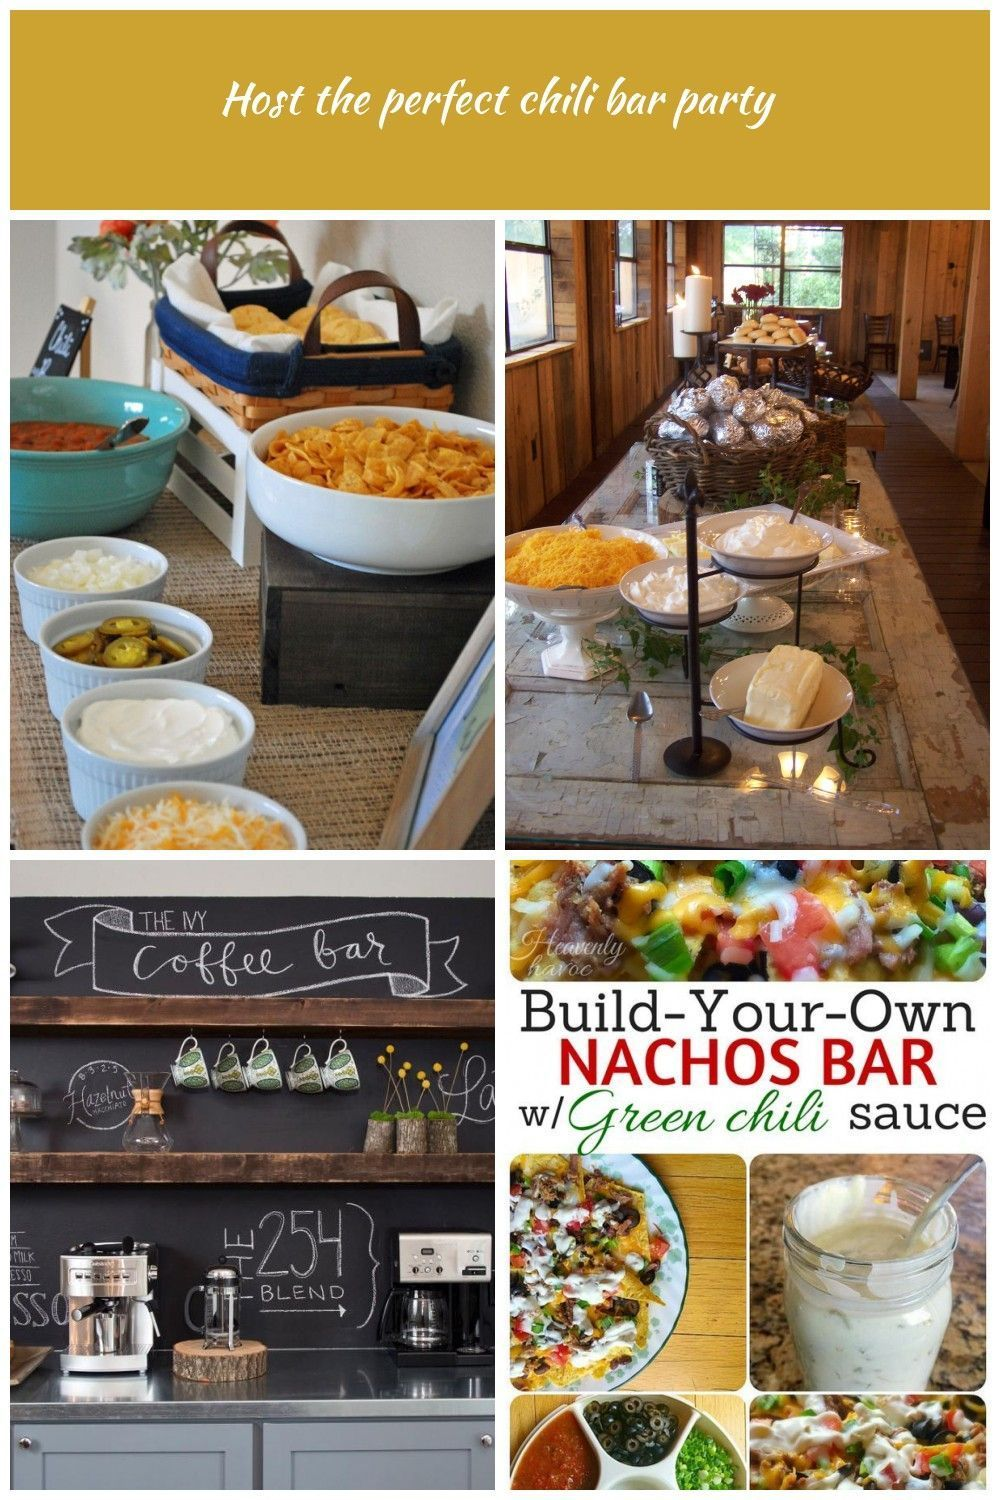 How to host the perfect fall chili bar party with awesome ideas for toppings and a cute